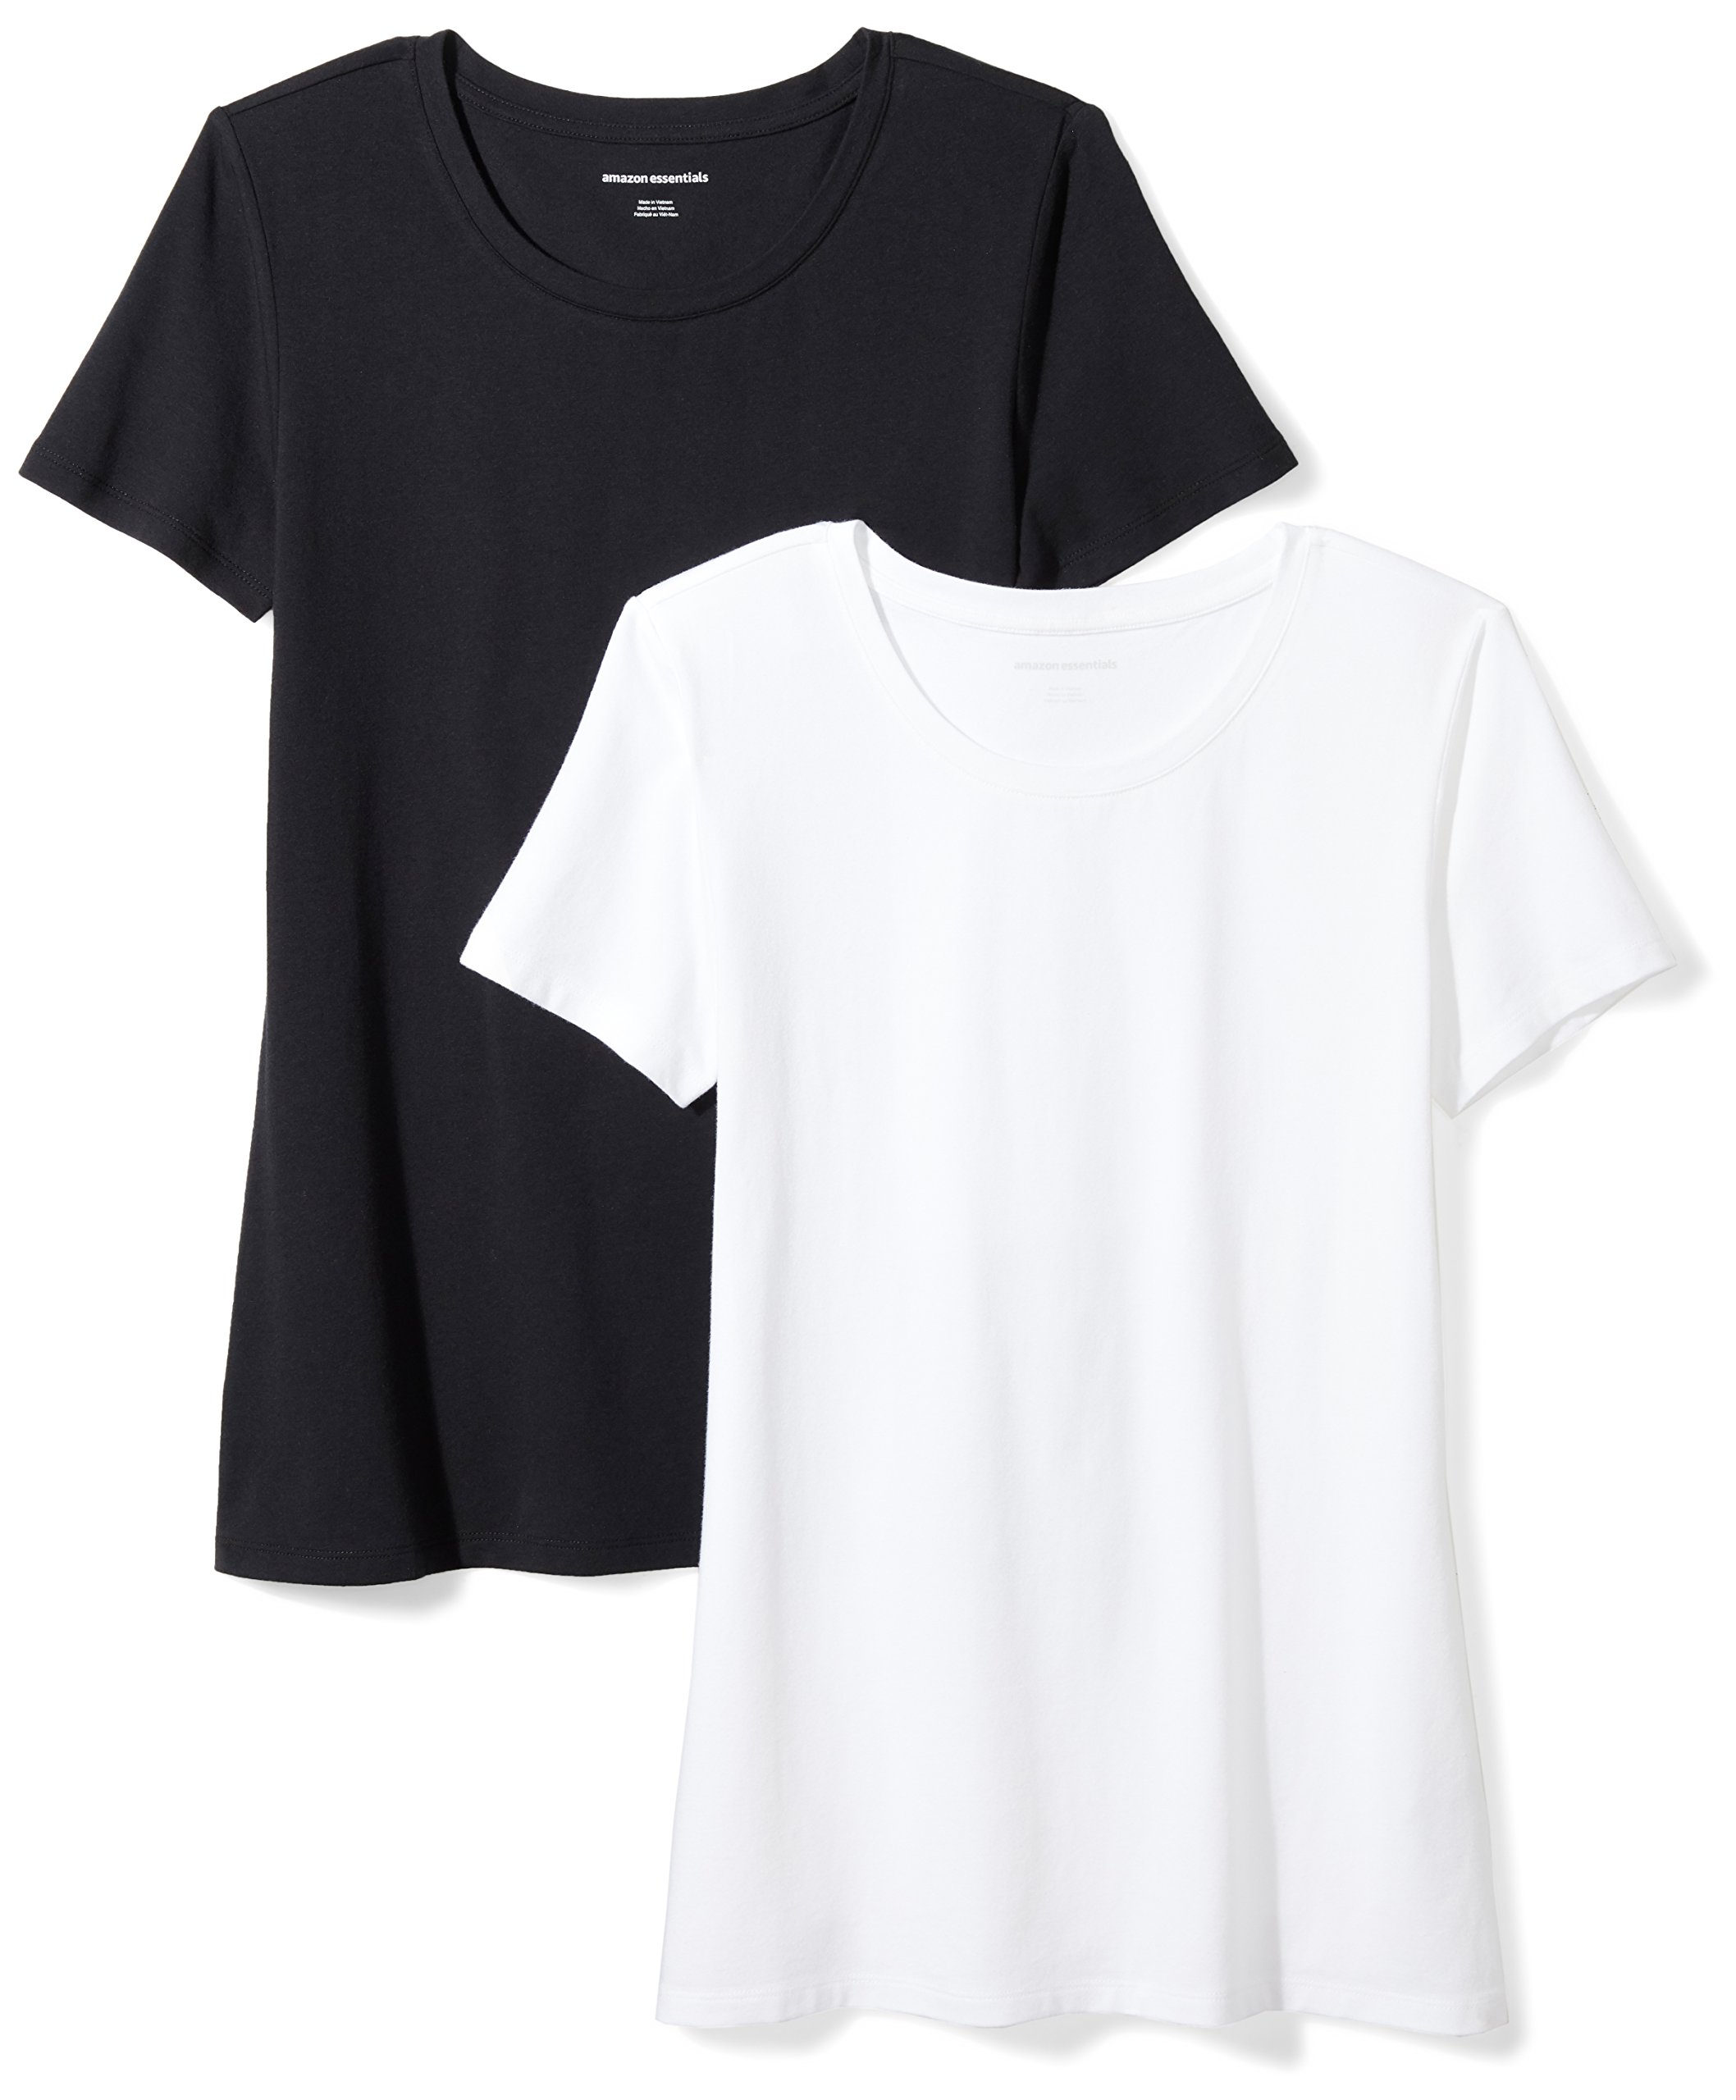 Amazon Essentials Women's 2-Pack Short-Sleeve Crewneck Solid T-Shirt, Black/White, Small